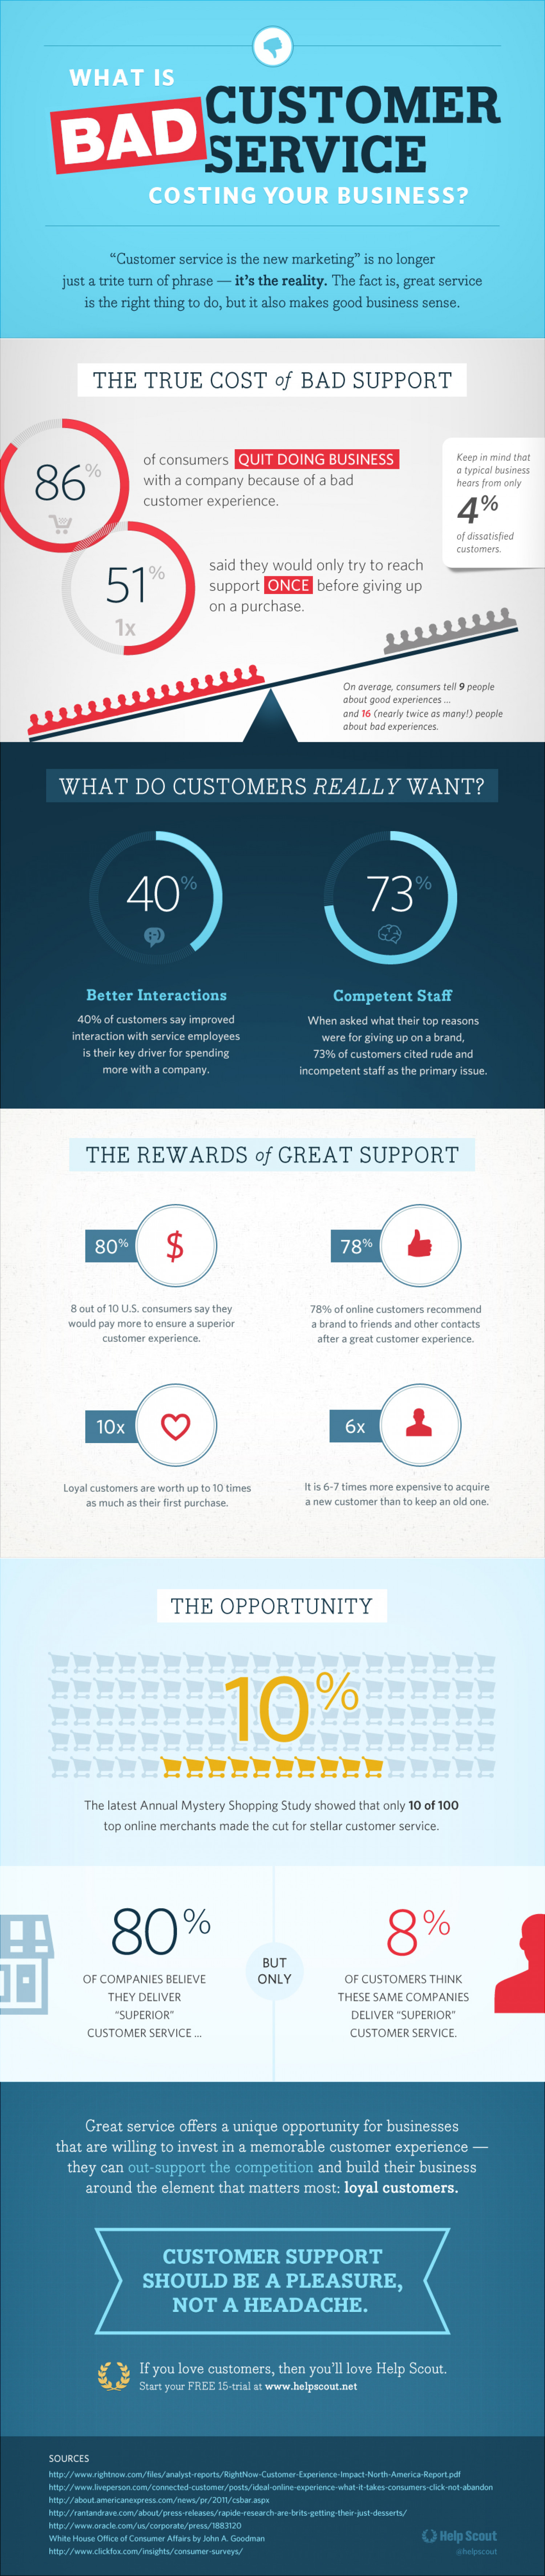 What is Bad Customer Service Costing Your Business? Infographic